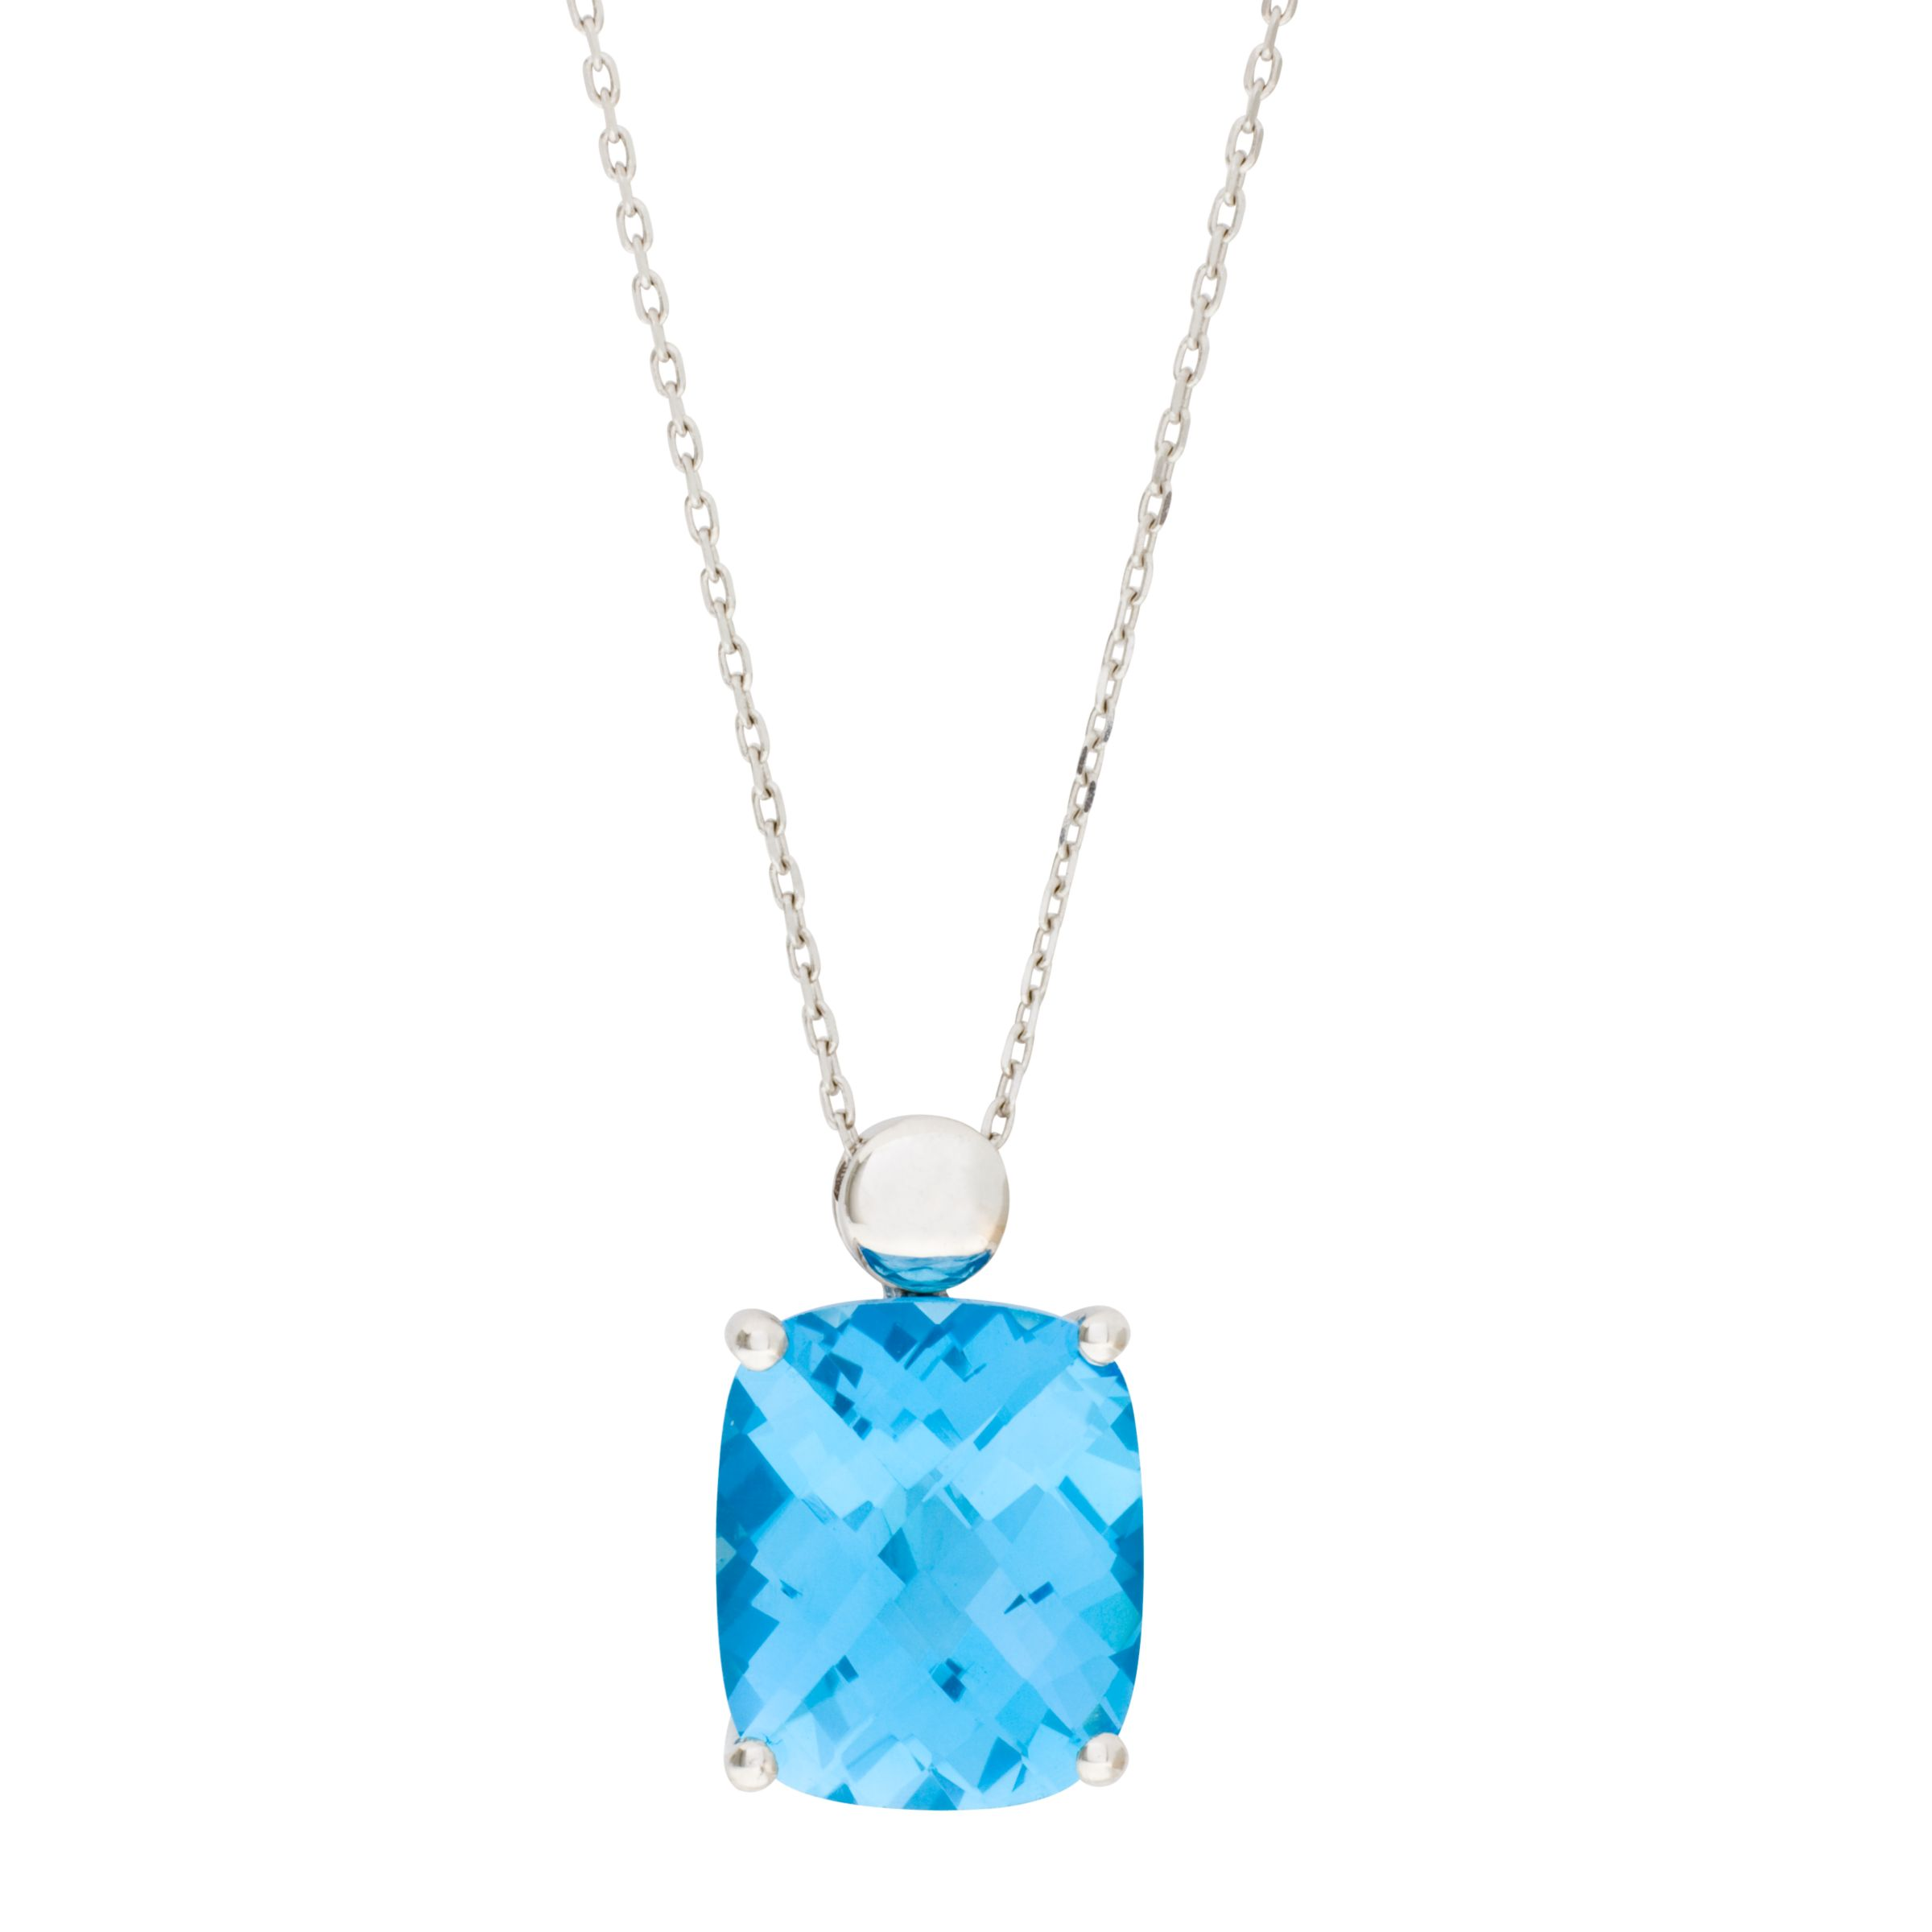 London Road White Gold Topaz Pendant Necklace